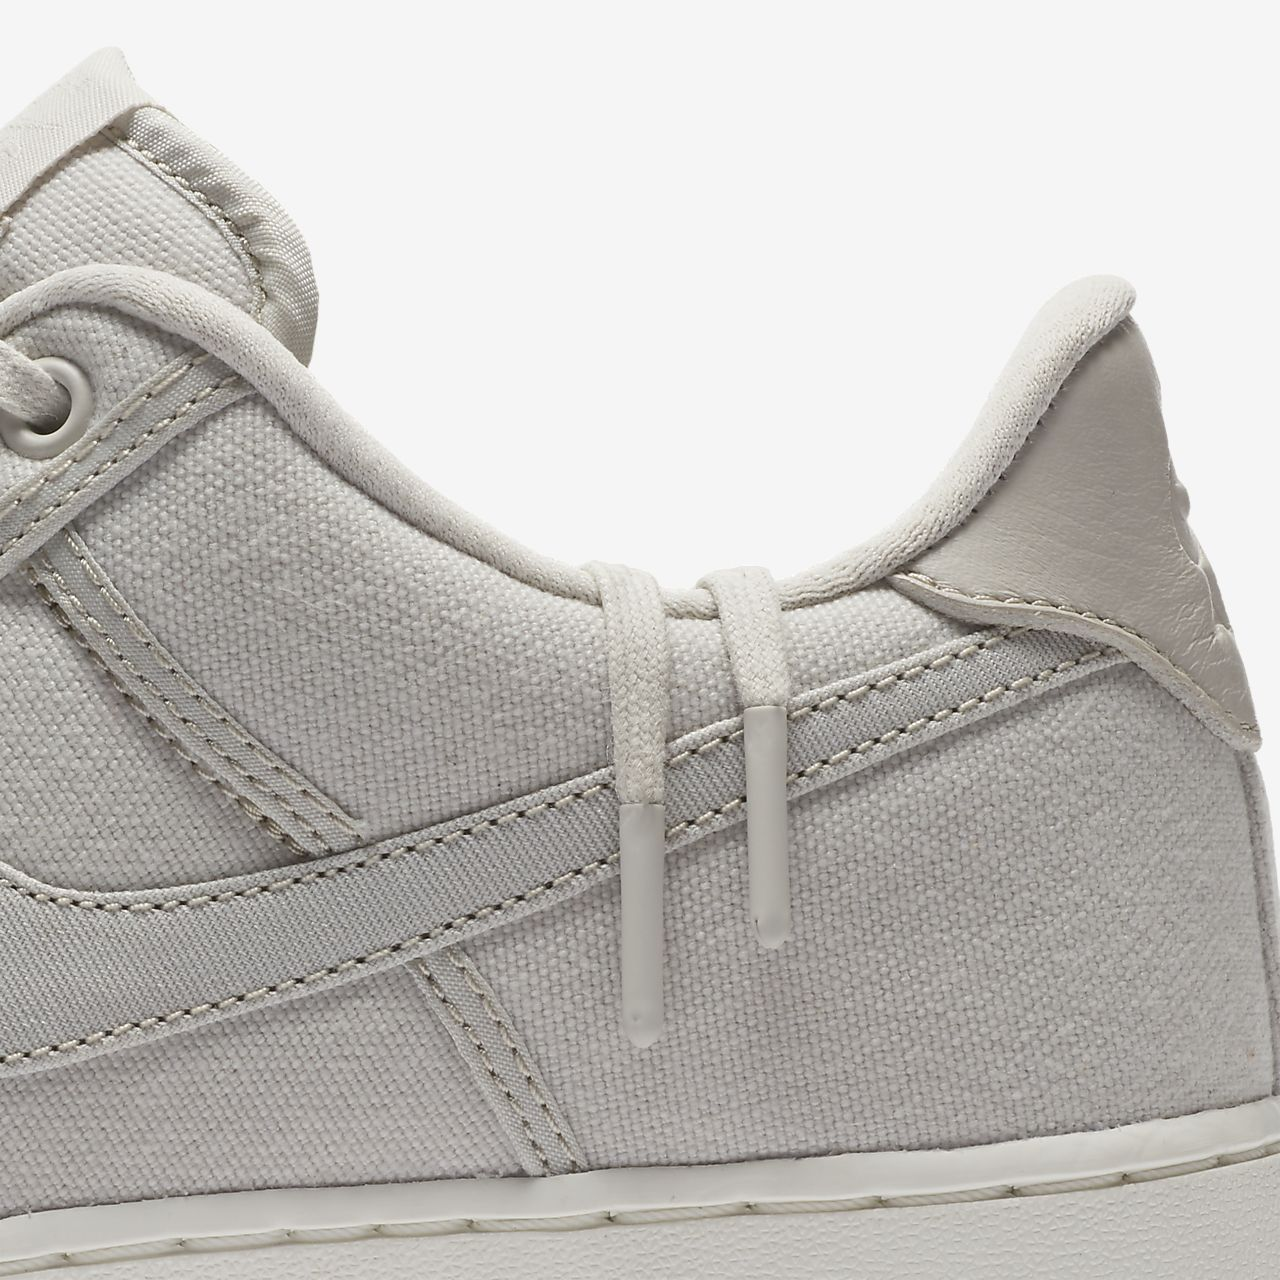 buy online 00bec de41f ... Nike Air Force 1 Low Retro QS Men s Shoe